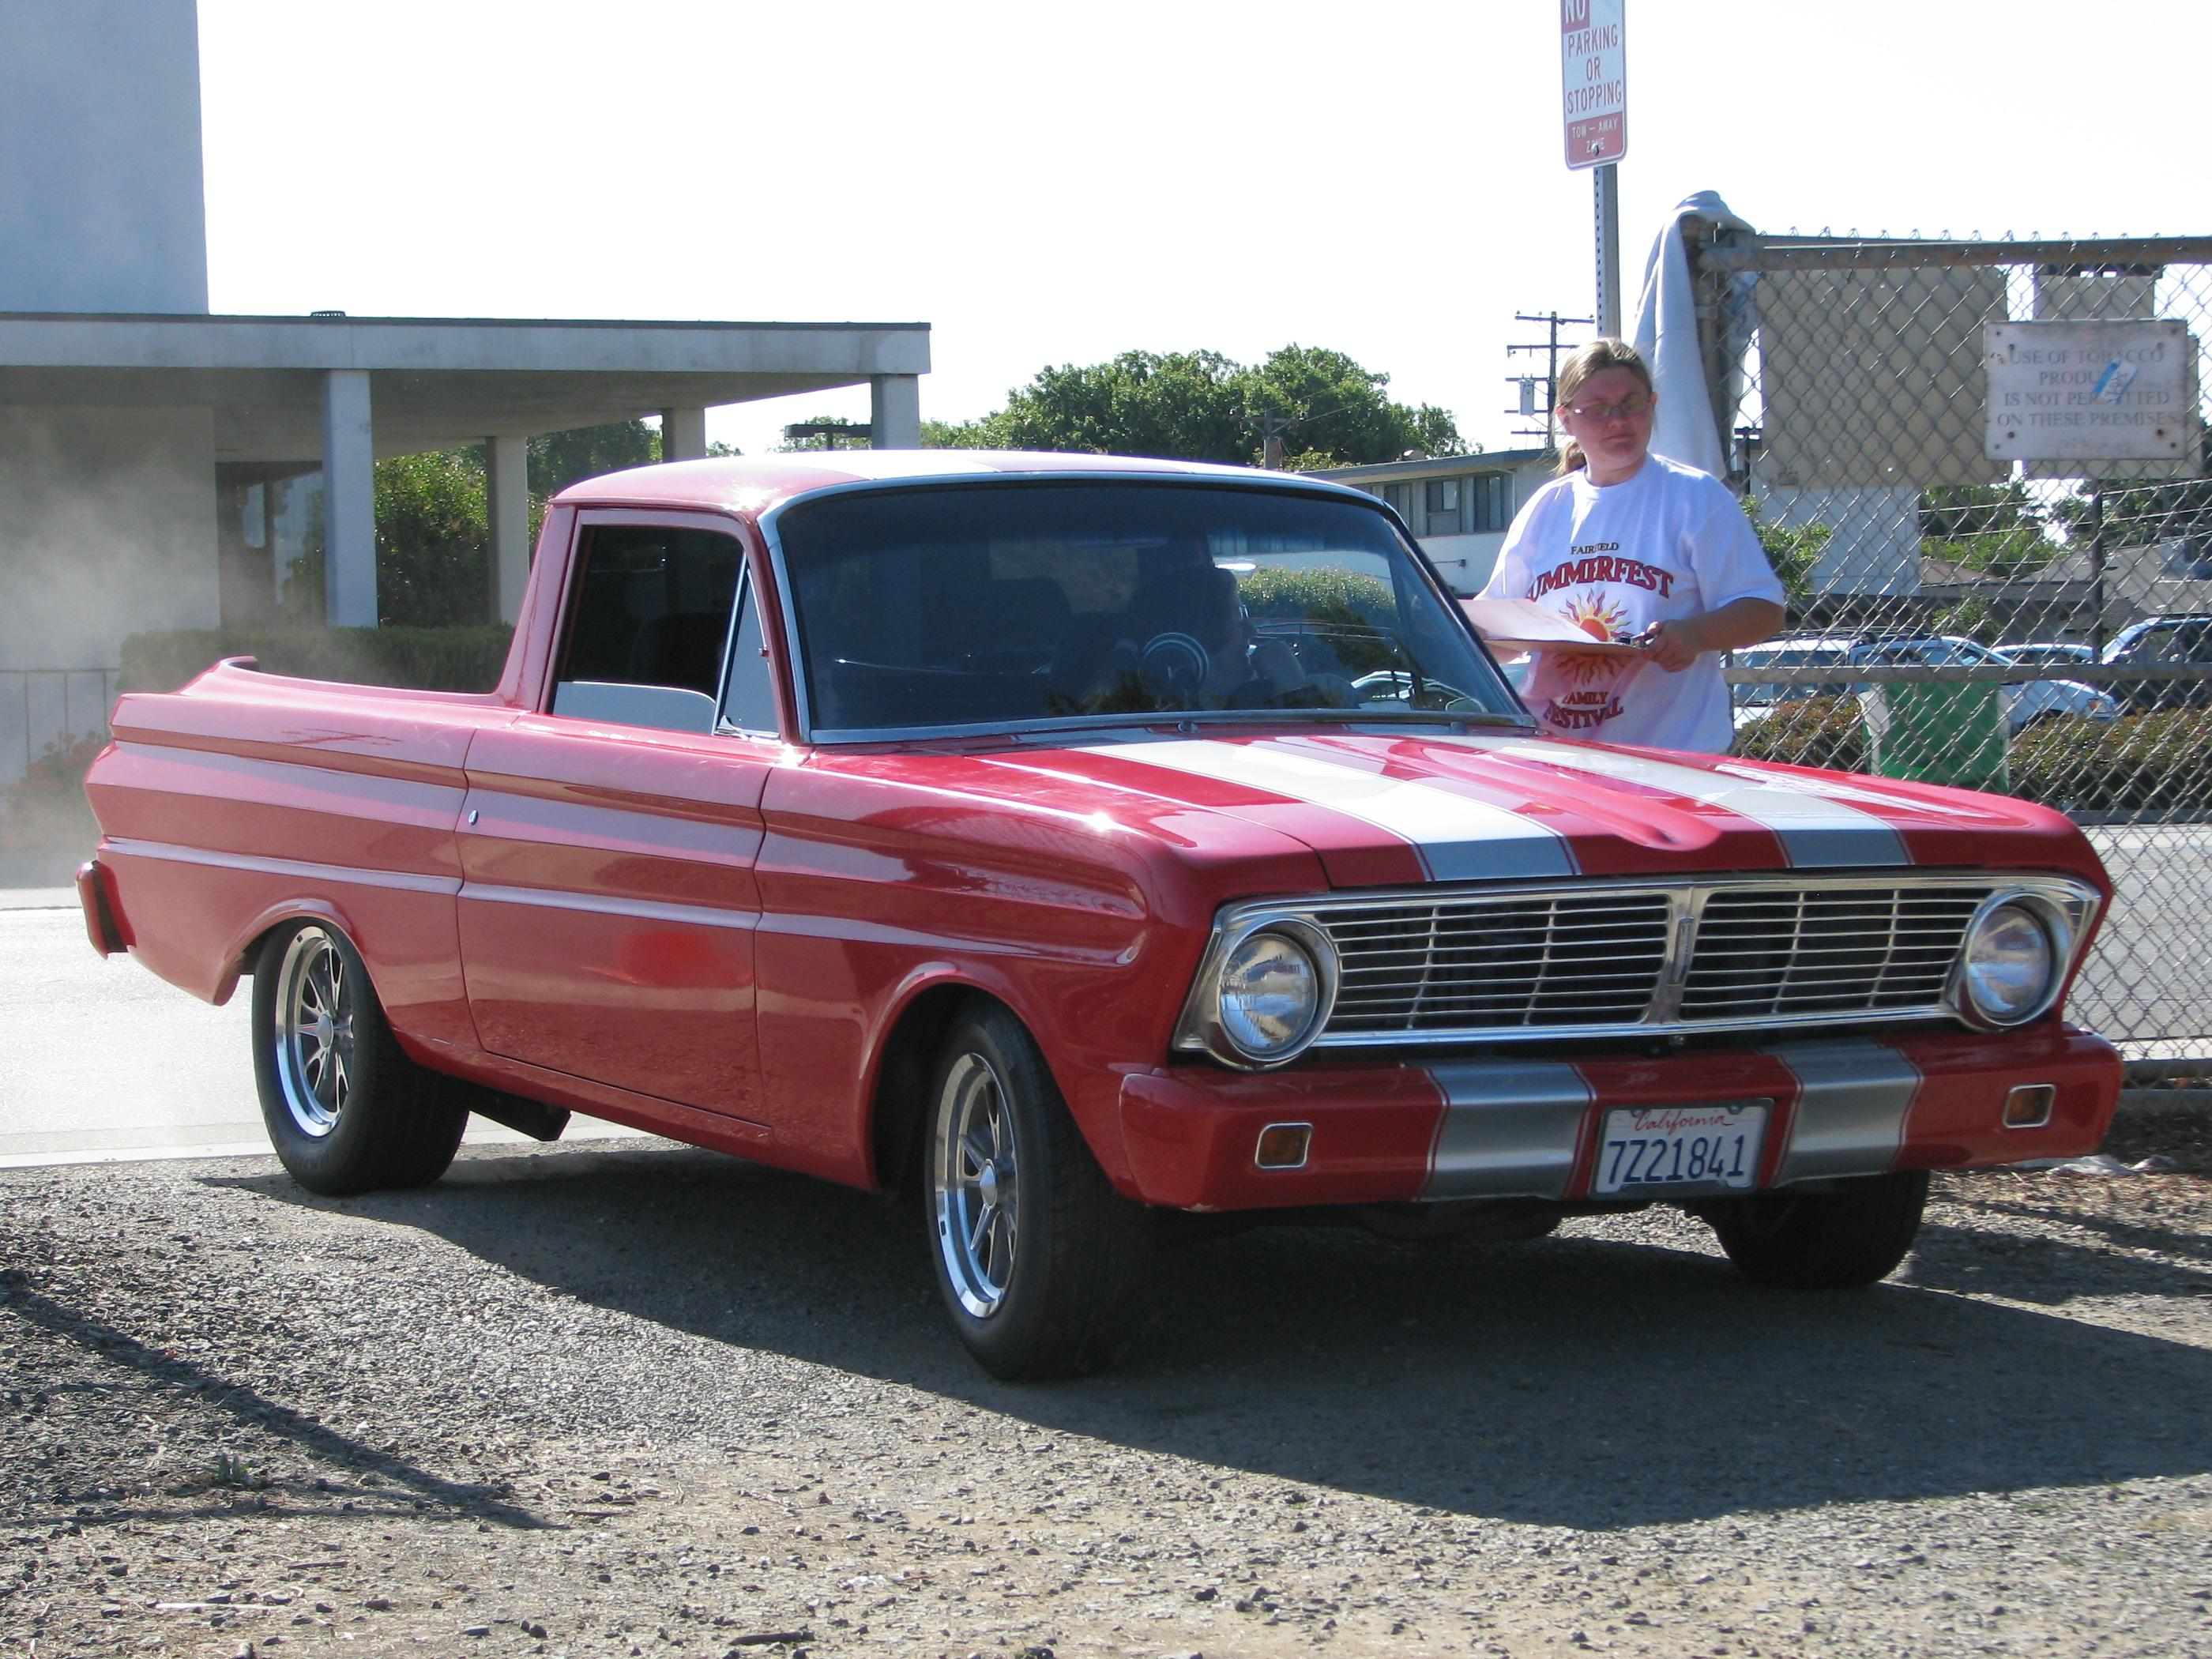 15209574926 in addition Lowered 92 Honda Accord also Voitures Anciennes De Granby Perles A Vendre moreover 1965 Ford Falcon Ranchero together with 1996 Ford F 250. on 1964 ford falcon